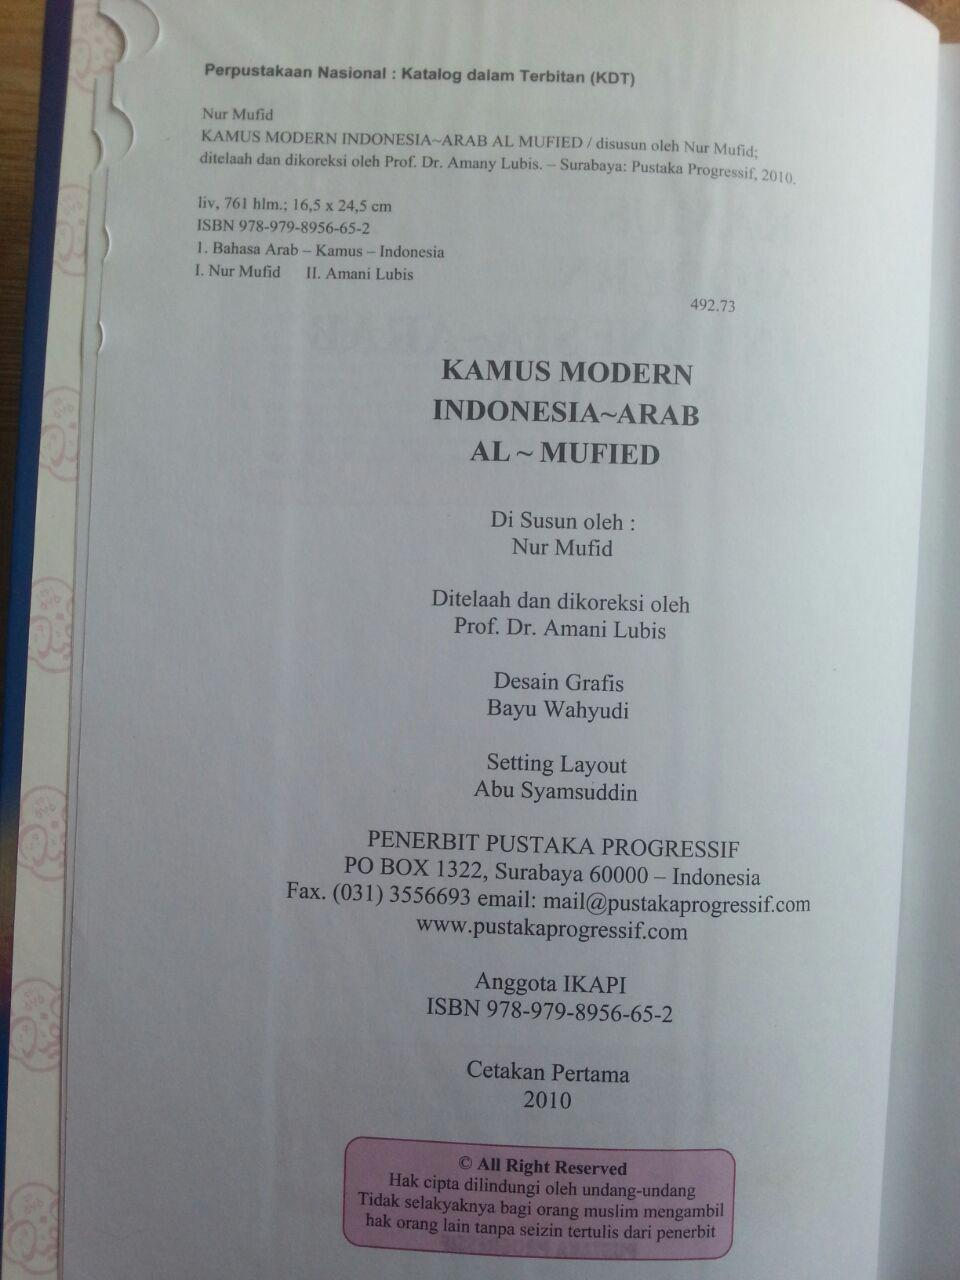 Kamus Modern Indonesia-Arab Al-Mufied isi